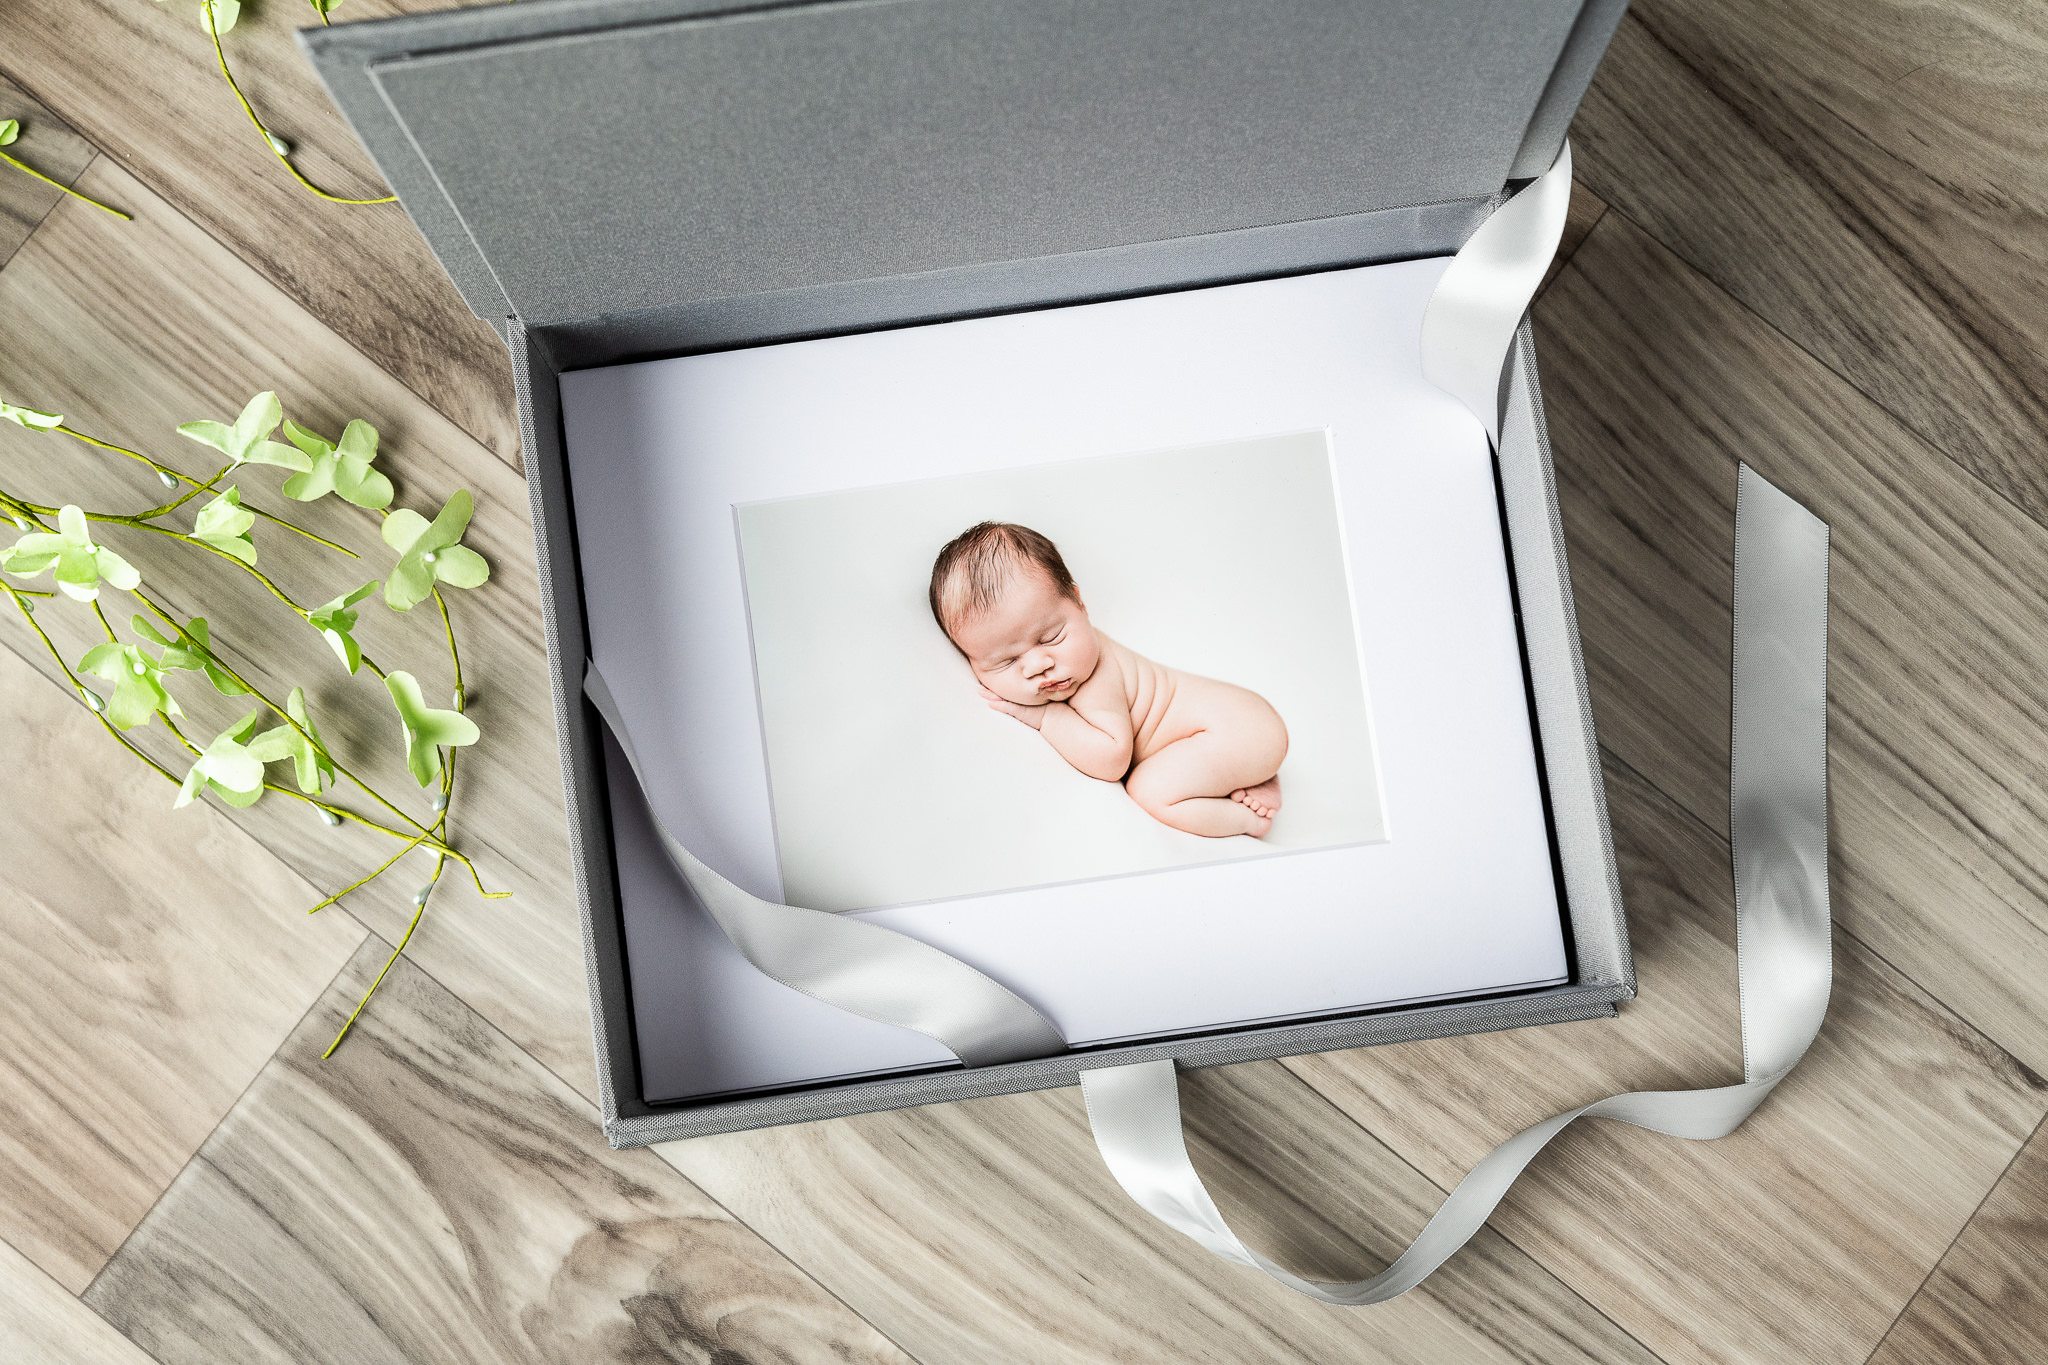 Heirloom Collection - A beautiful personalized heirloom box that holds gorgeous matted prints.Starting at $699